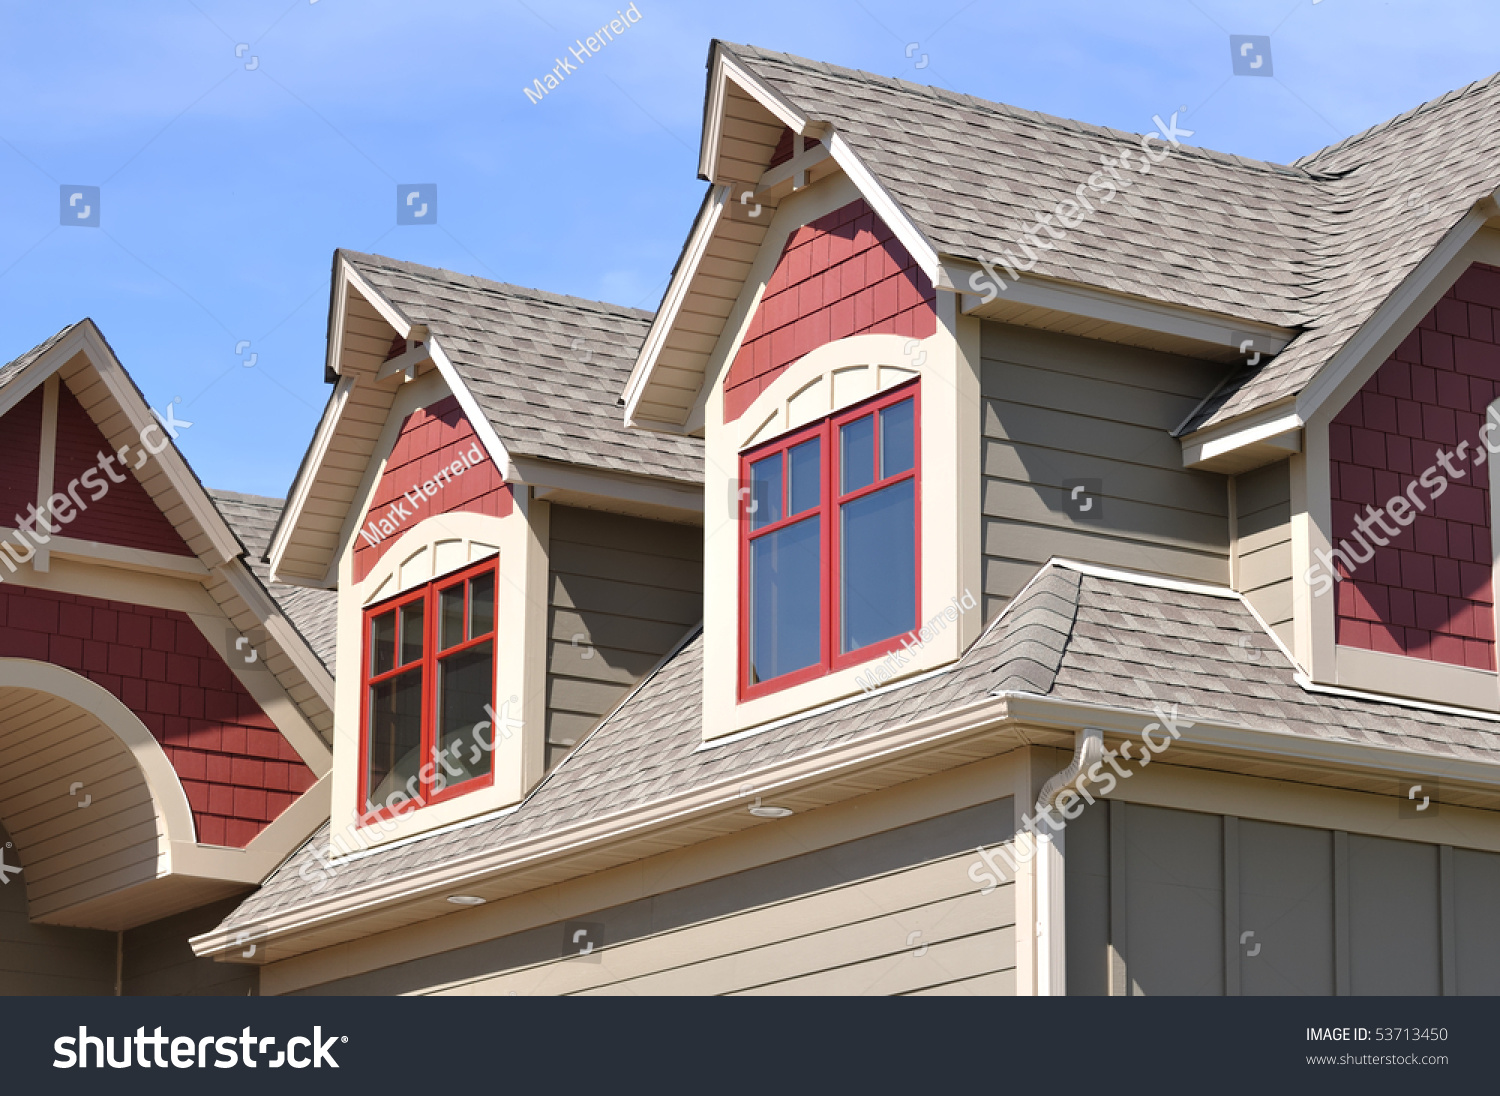 Gable Dormers Roof Residential House Stock Photo 53713450